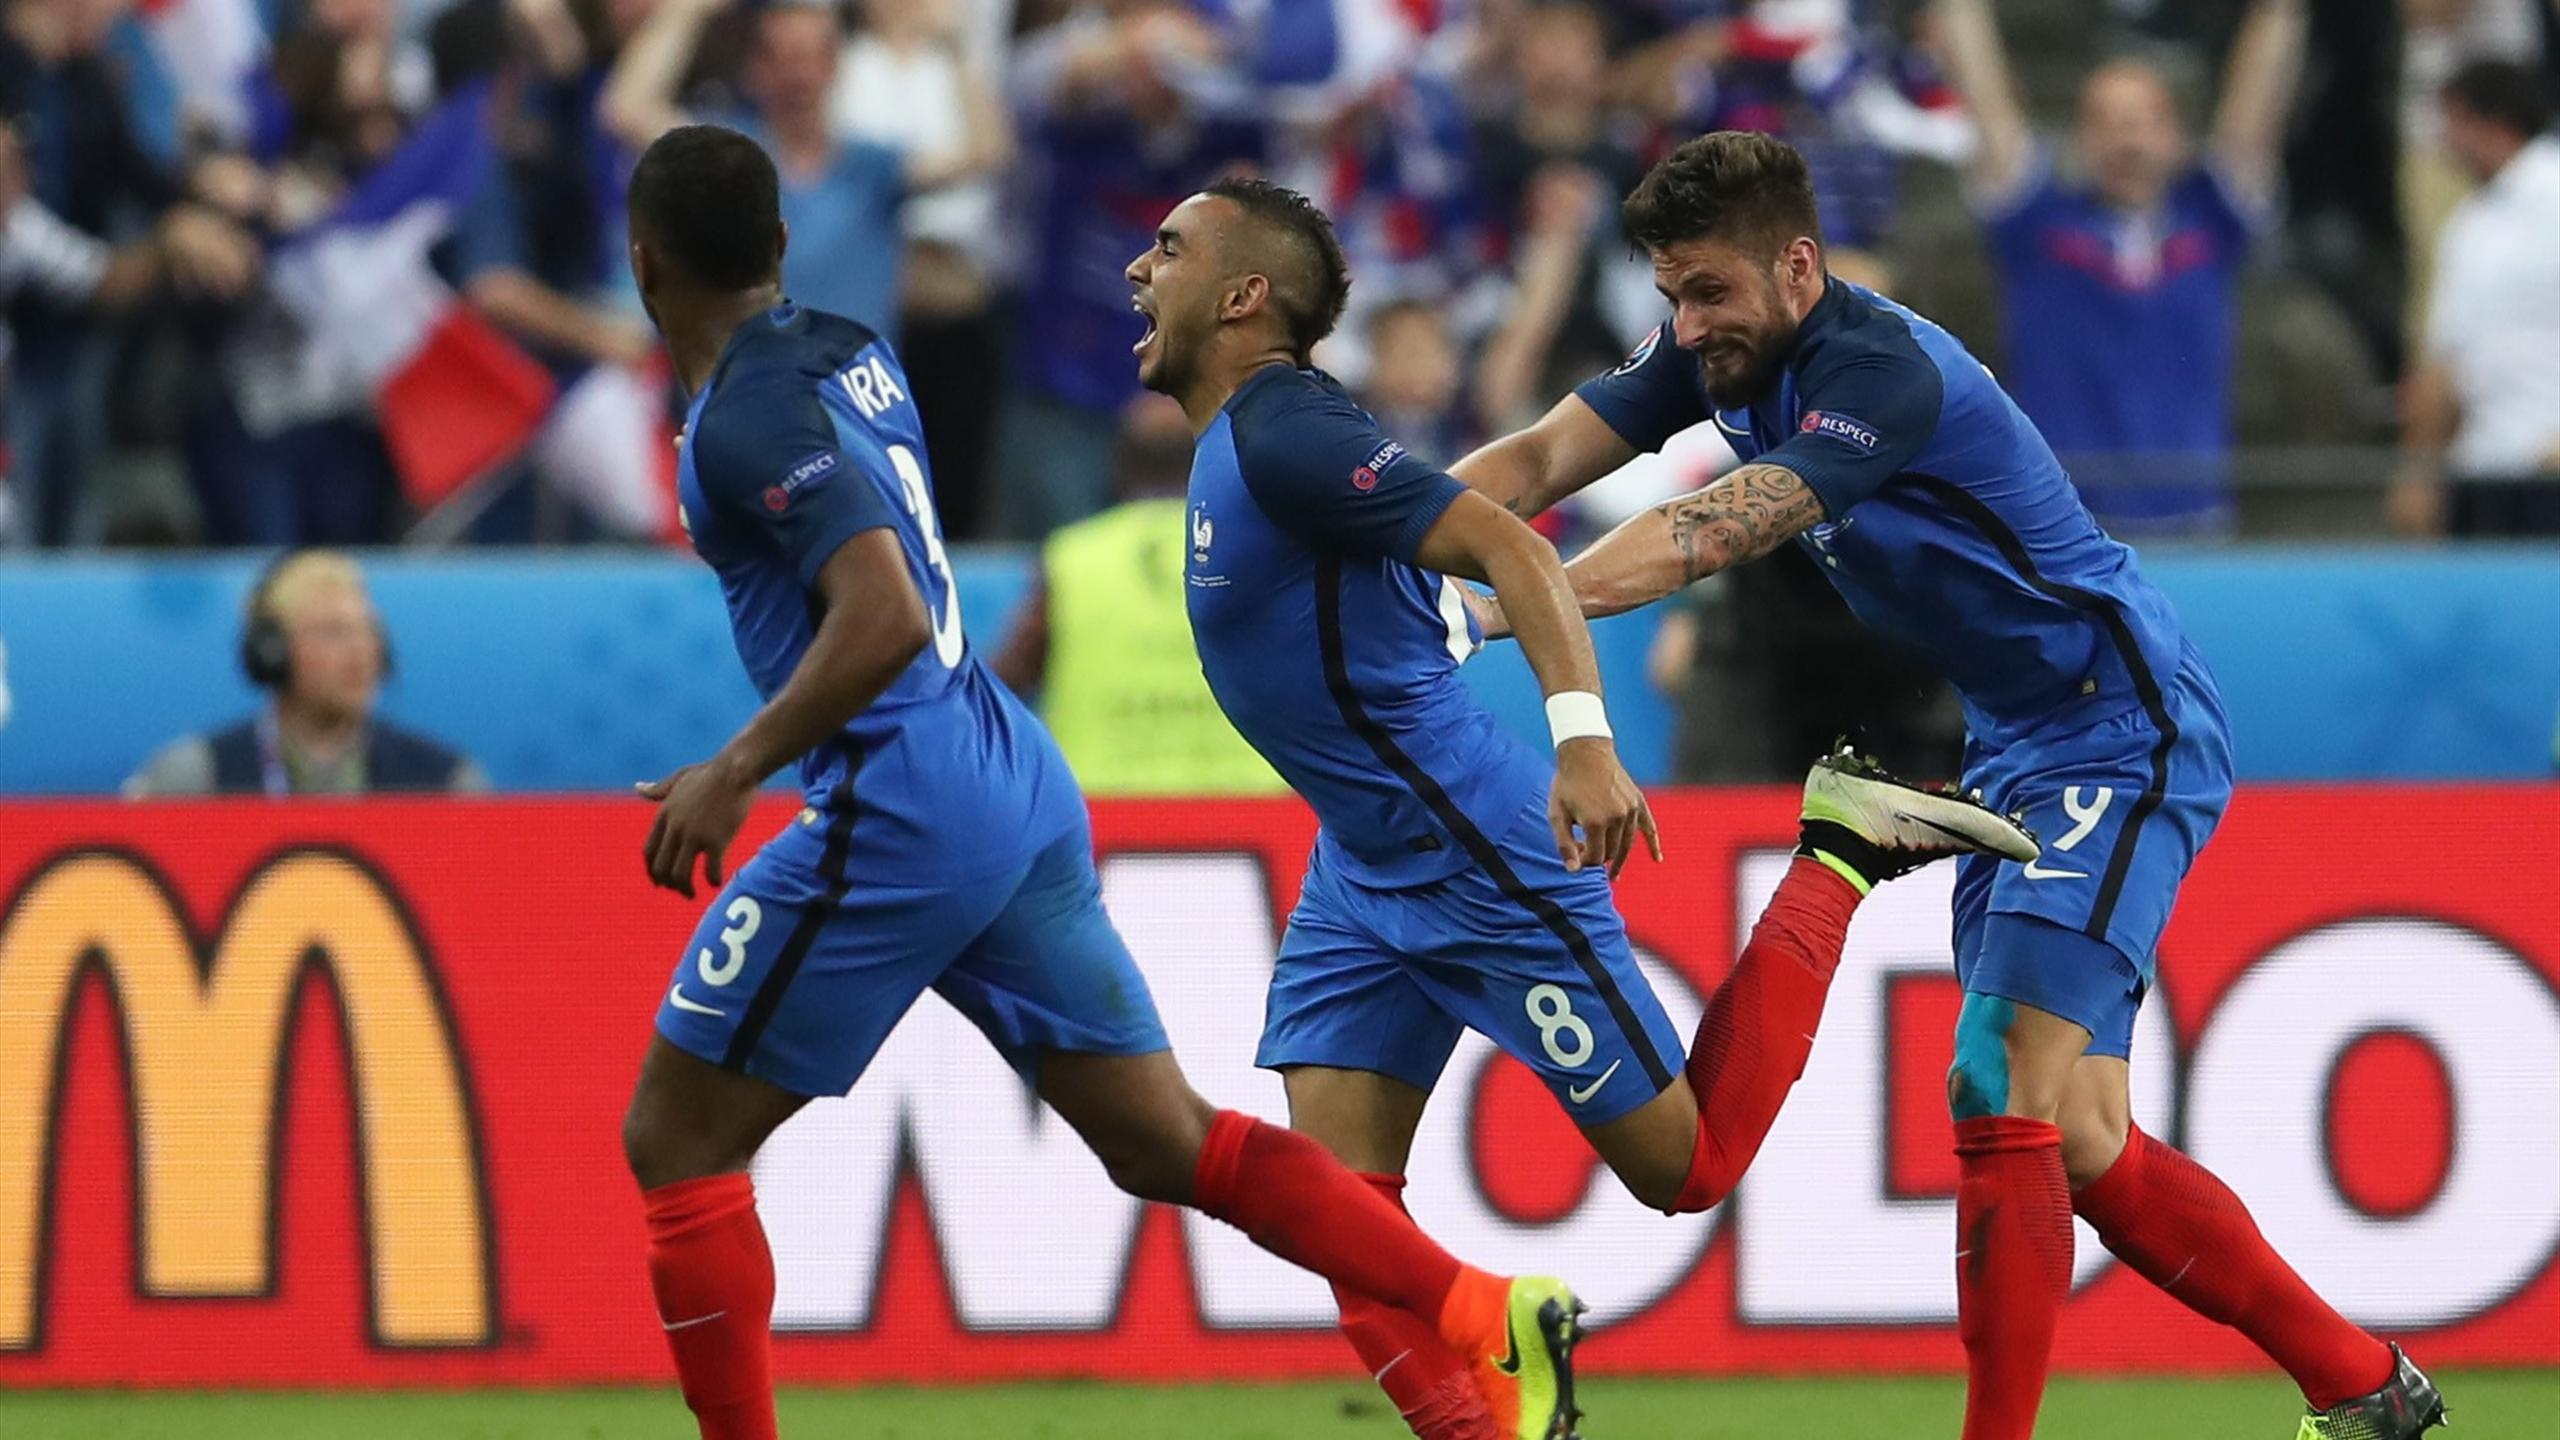 France's Dimitri Payet celebrates after scoring their second goal with team mates